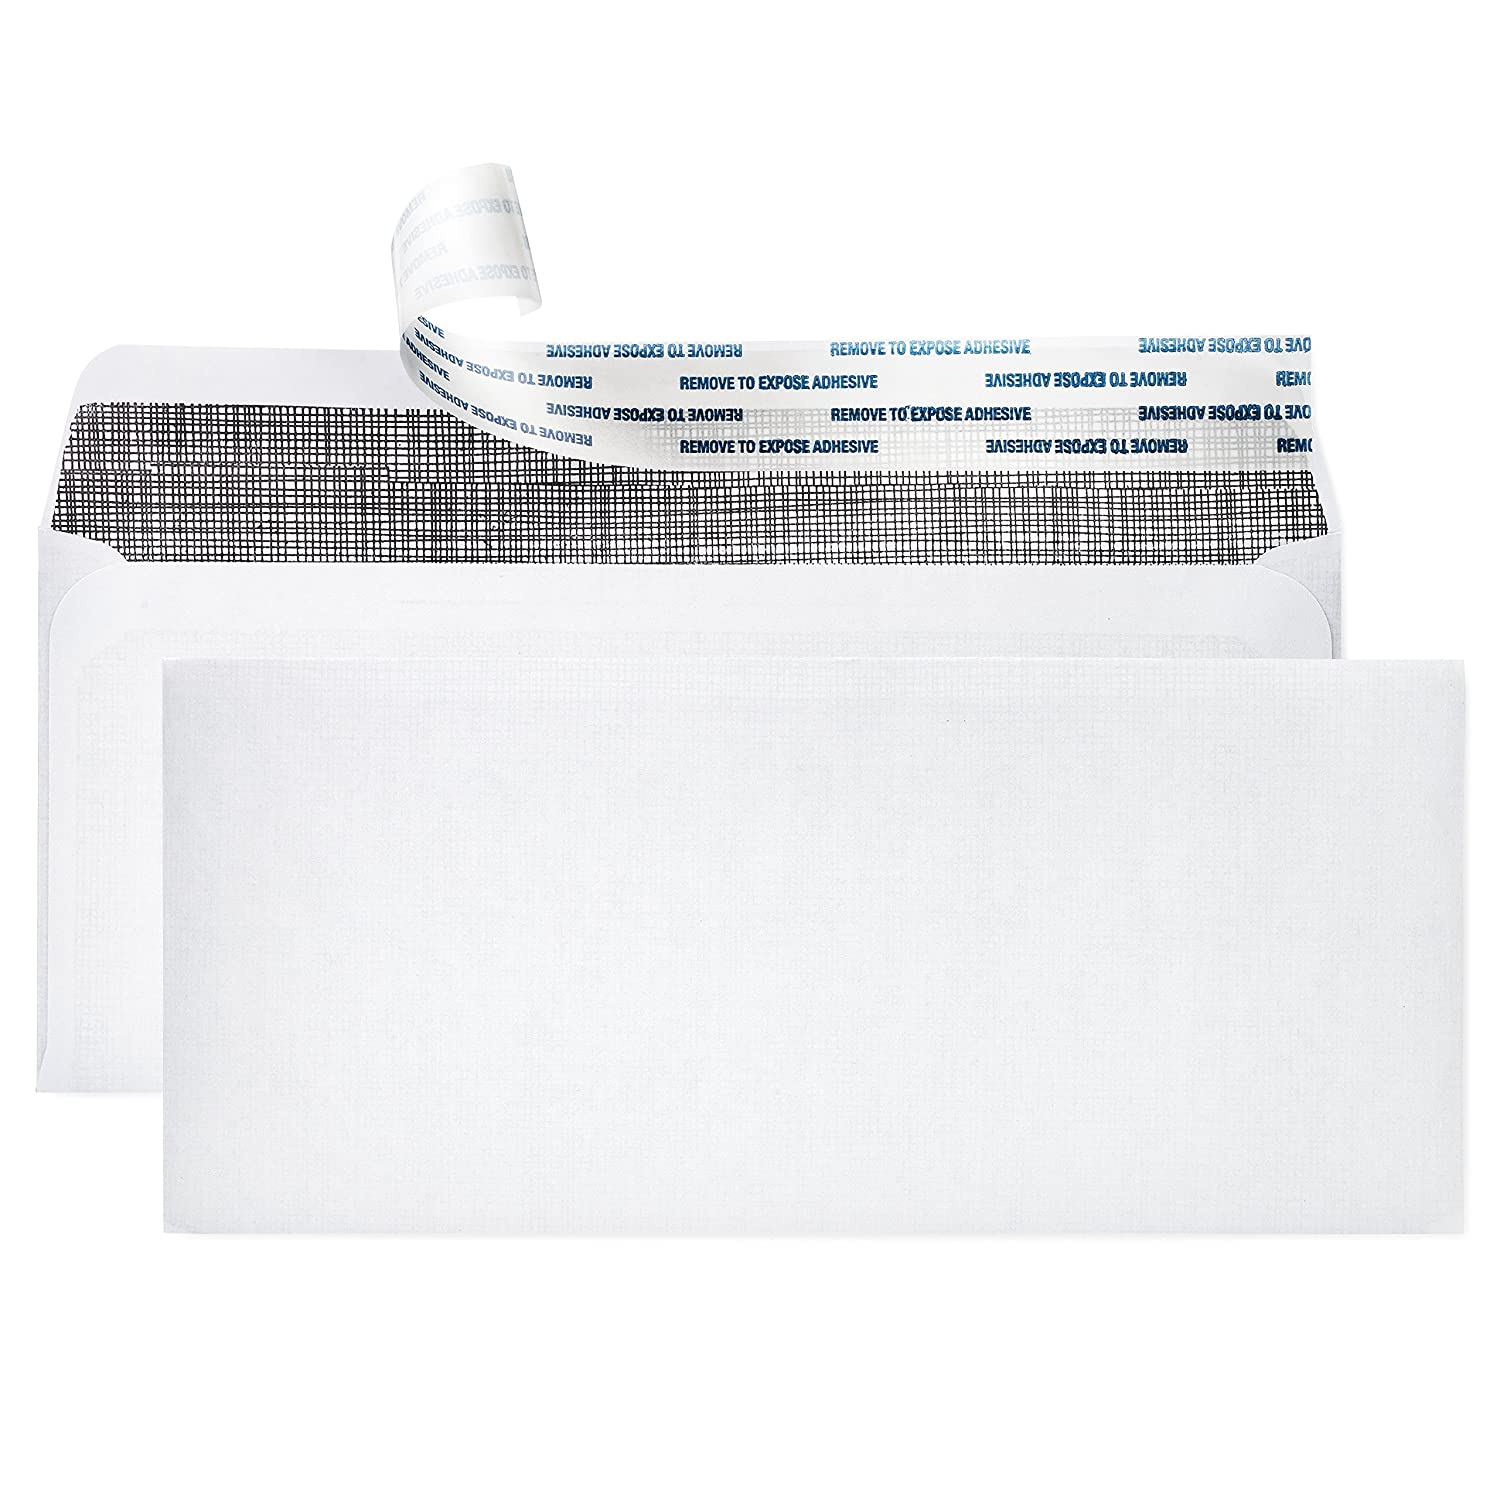 # 10 Security Envelopes ~ 500 Letter Size Envelopes with Peel & Seal Self Adhesive + Tinted Interior for Privacy Protection ~ Printer Friendly, Boxed, 4-1/8